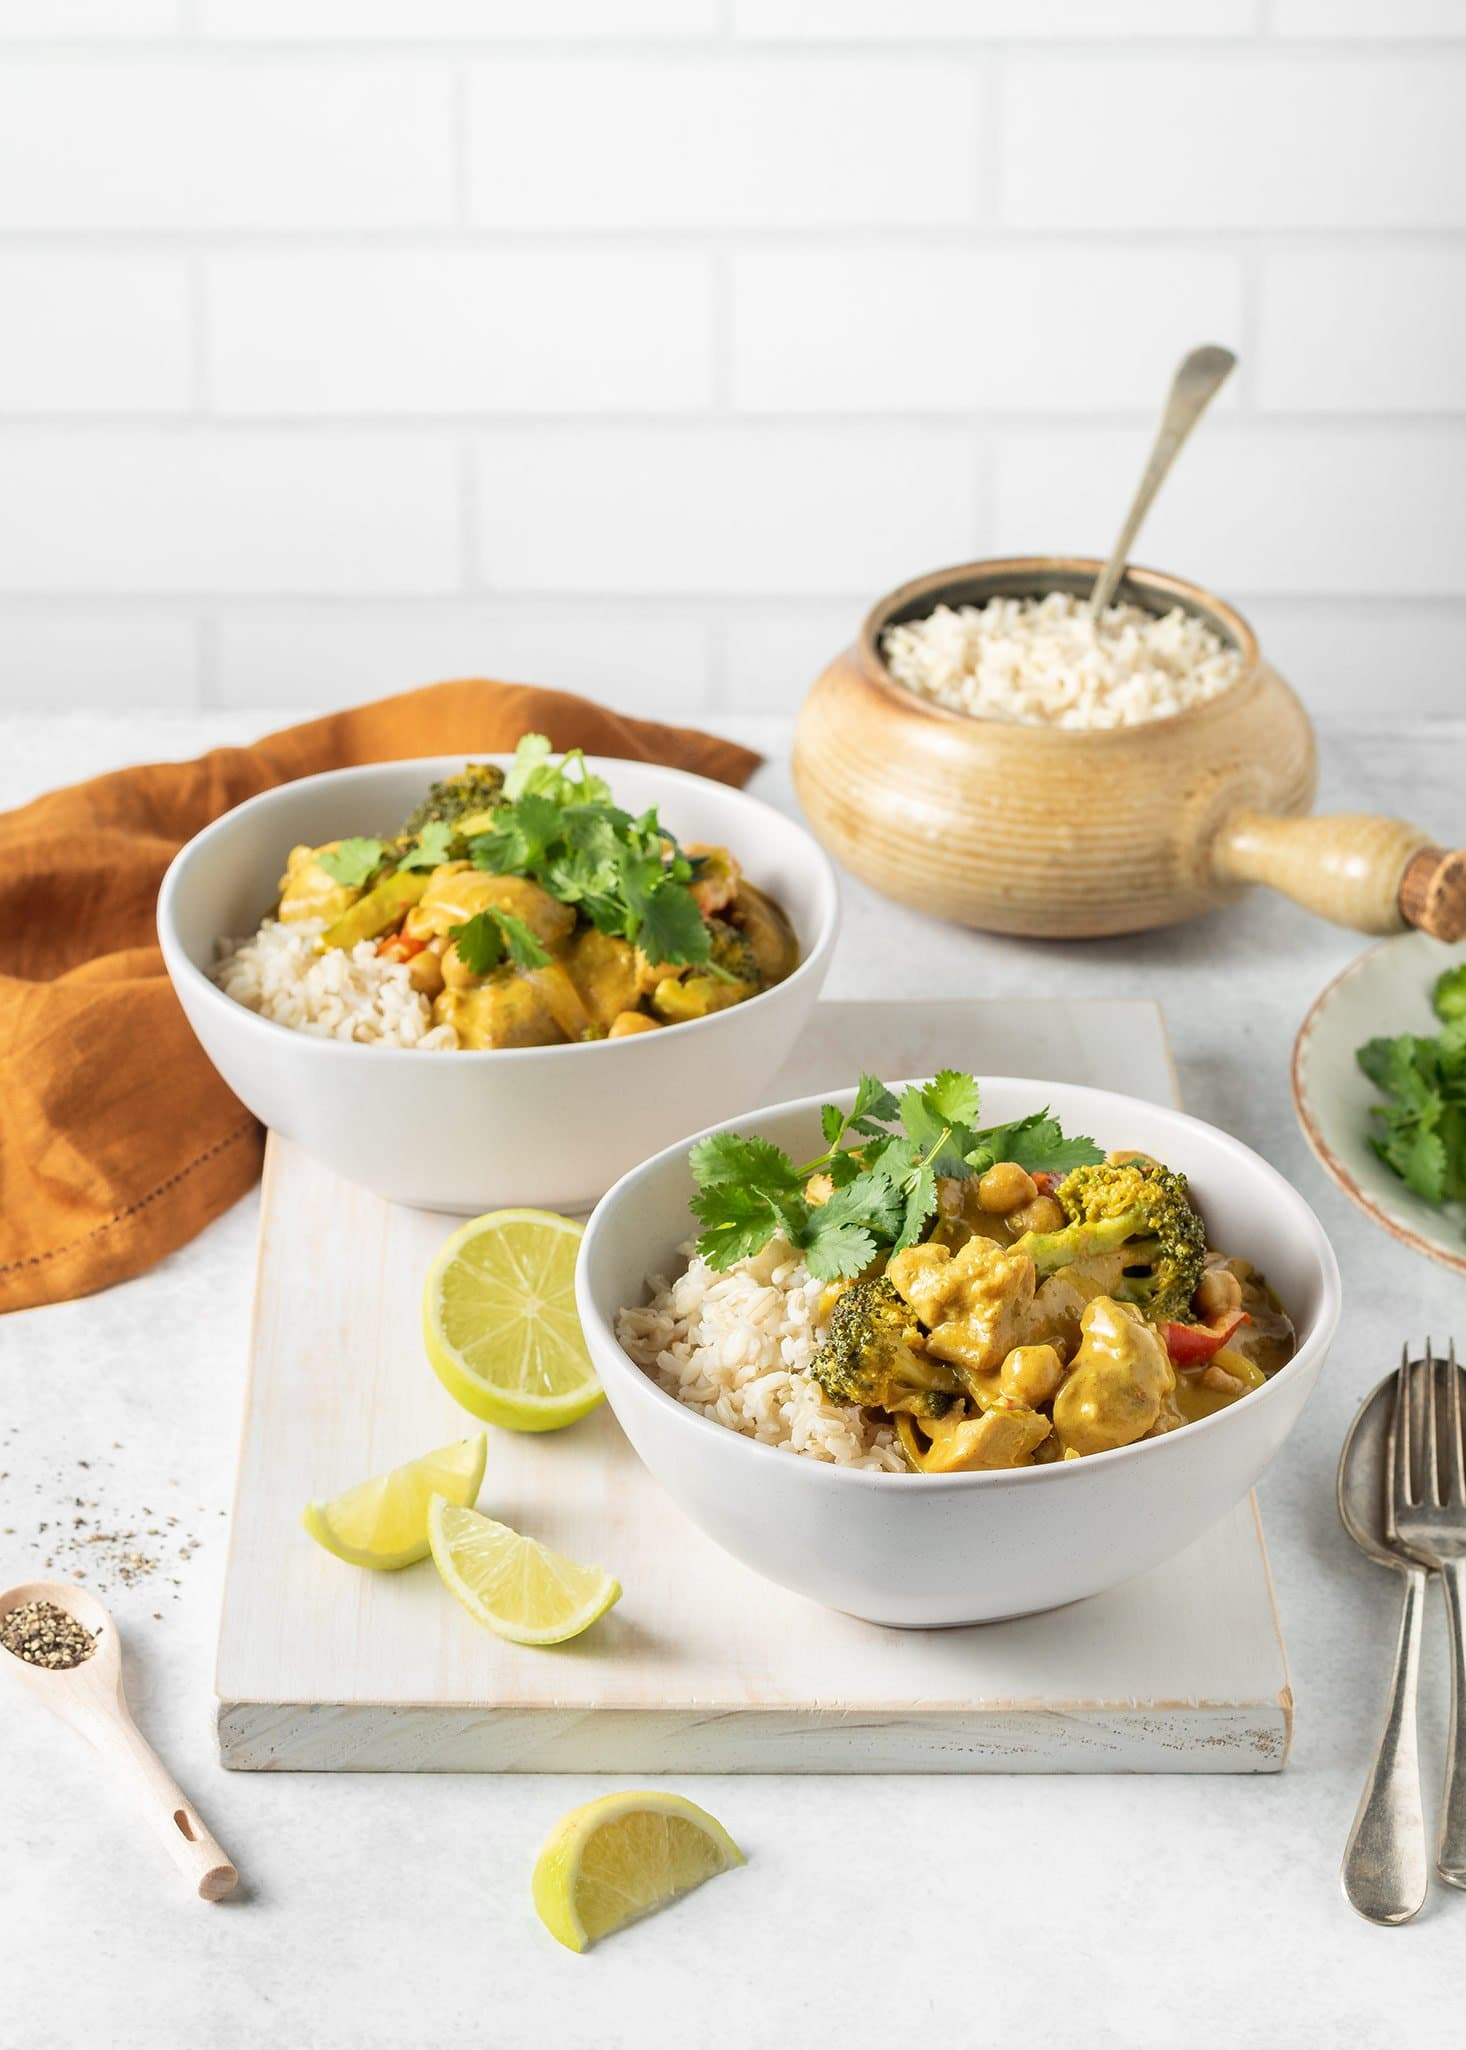 Peanut butter chicken curry on brown rice with lime and coriander.